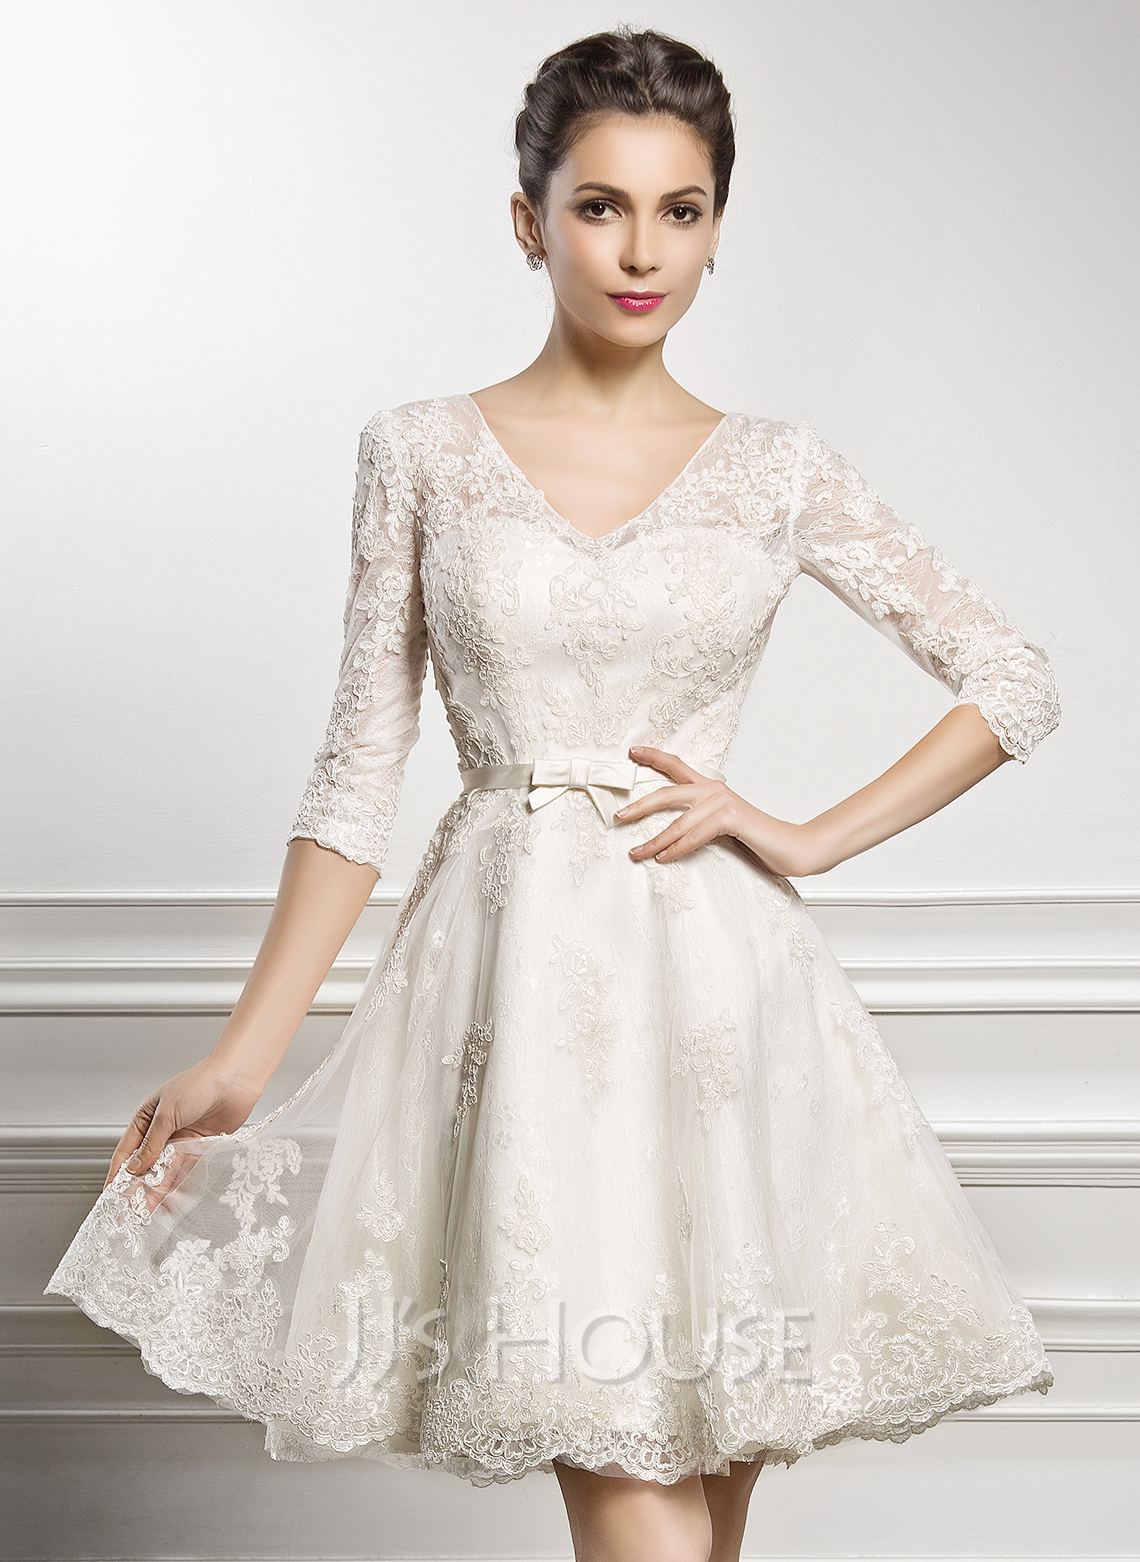 A Line Princess V Neck Knee Length Lace Wedding Dress With Bow Loading Zoom